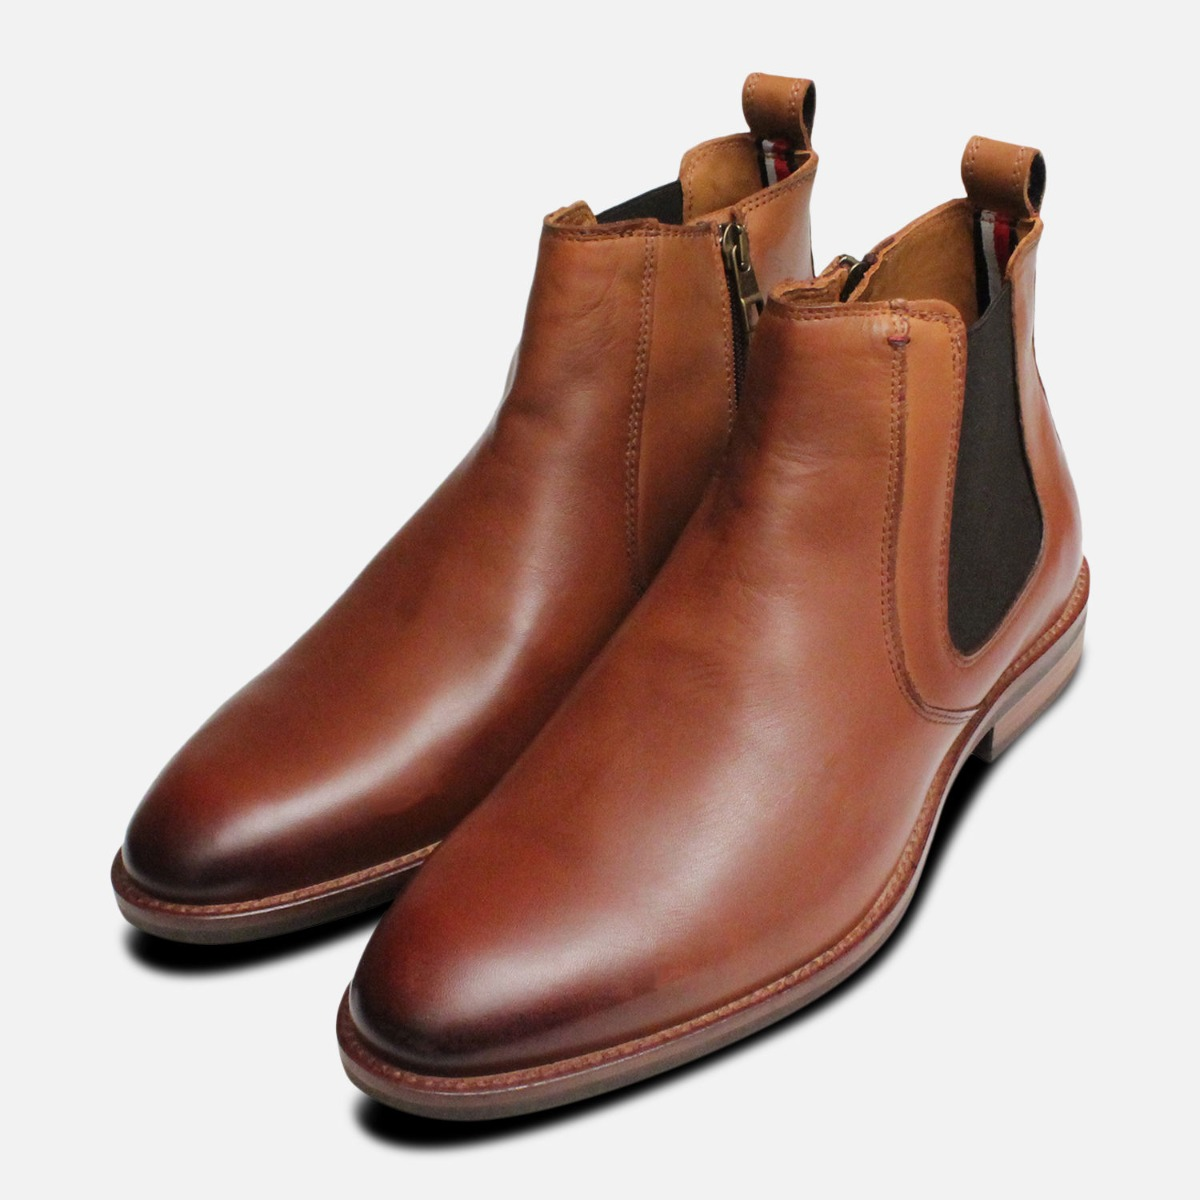 Shop Tommy Hilfiger Chelsea Boots for